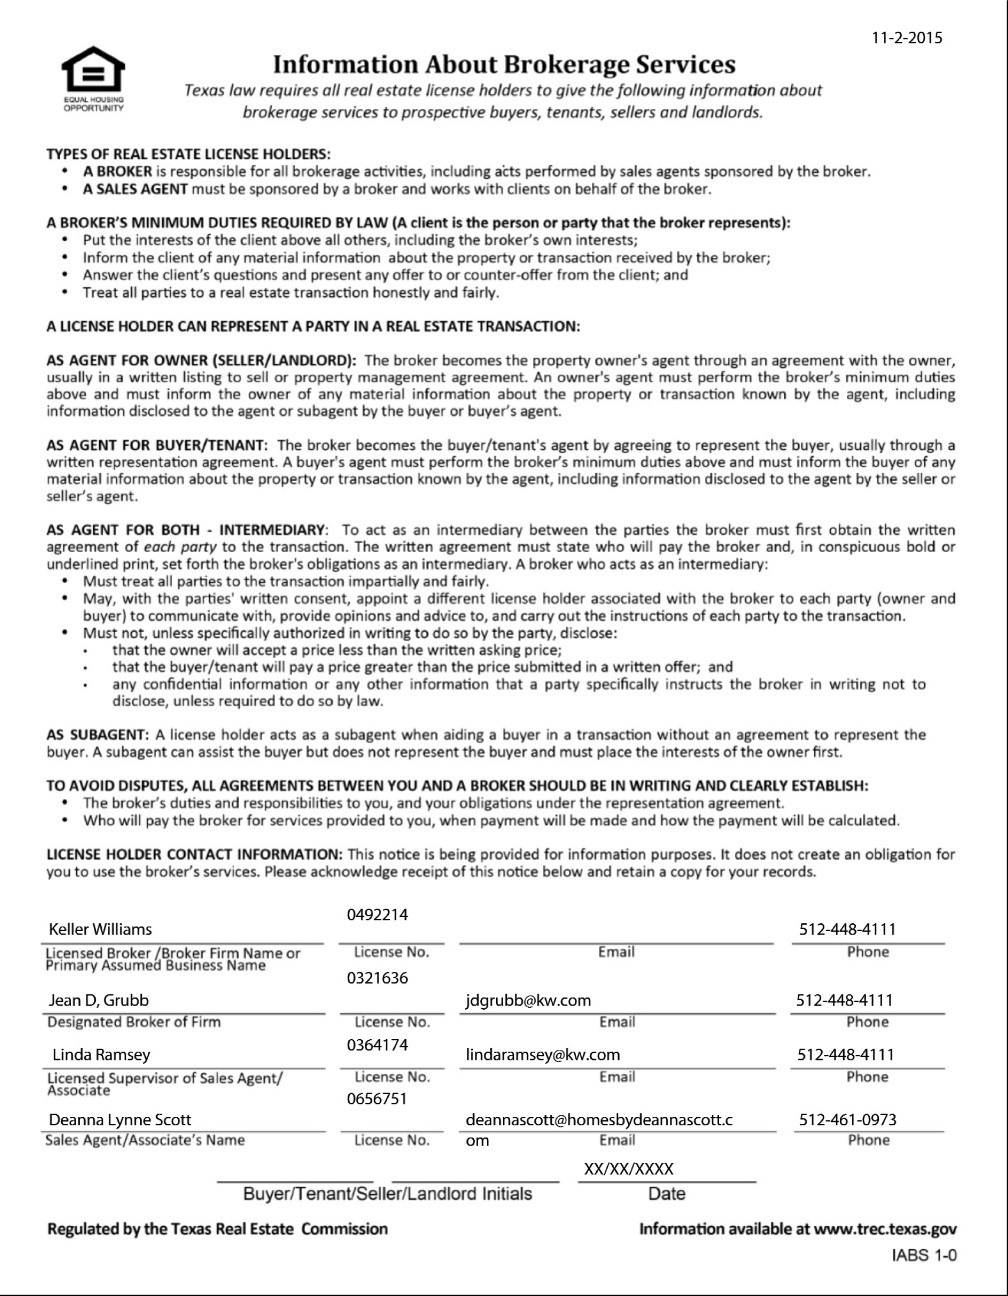 Texas Real Estate Commission (TREC) Information About Brokerage Services Form-67